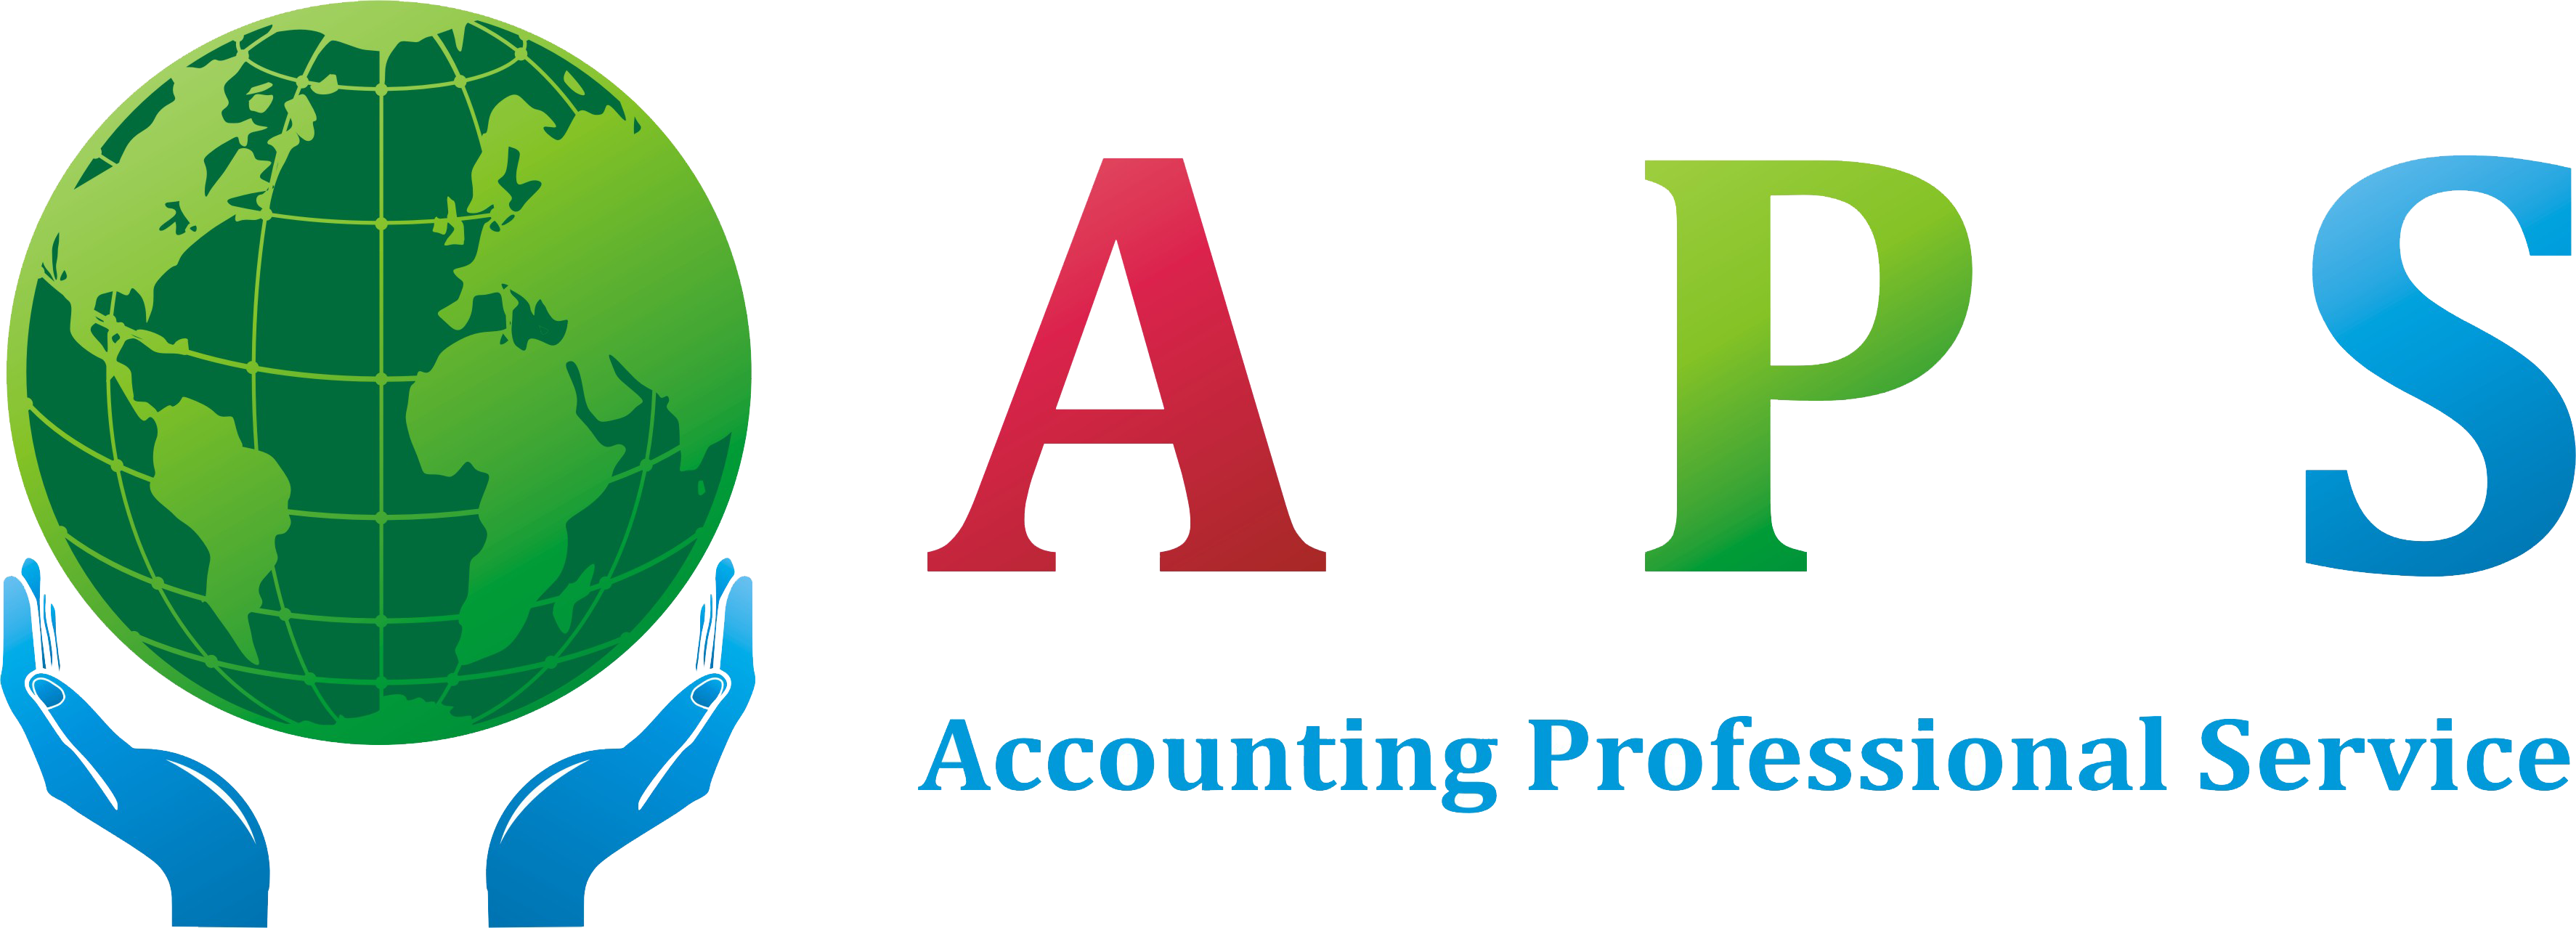 Software Accurate | Accurate Accounting Software Distributor Program Accurate & Jasa Implementasi Software Accurate + Program Accurate  | Software Accurate  | Program Akuntansi Accurate  |   Implementasi Program Accurate | Jasa Training Program Accurate |  Accurate Free Download  |  Accurate Versi 4  |  Accurate Software Accounting